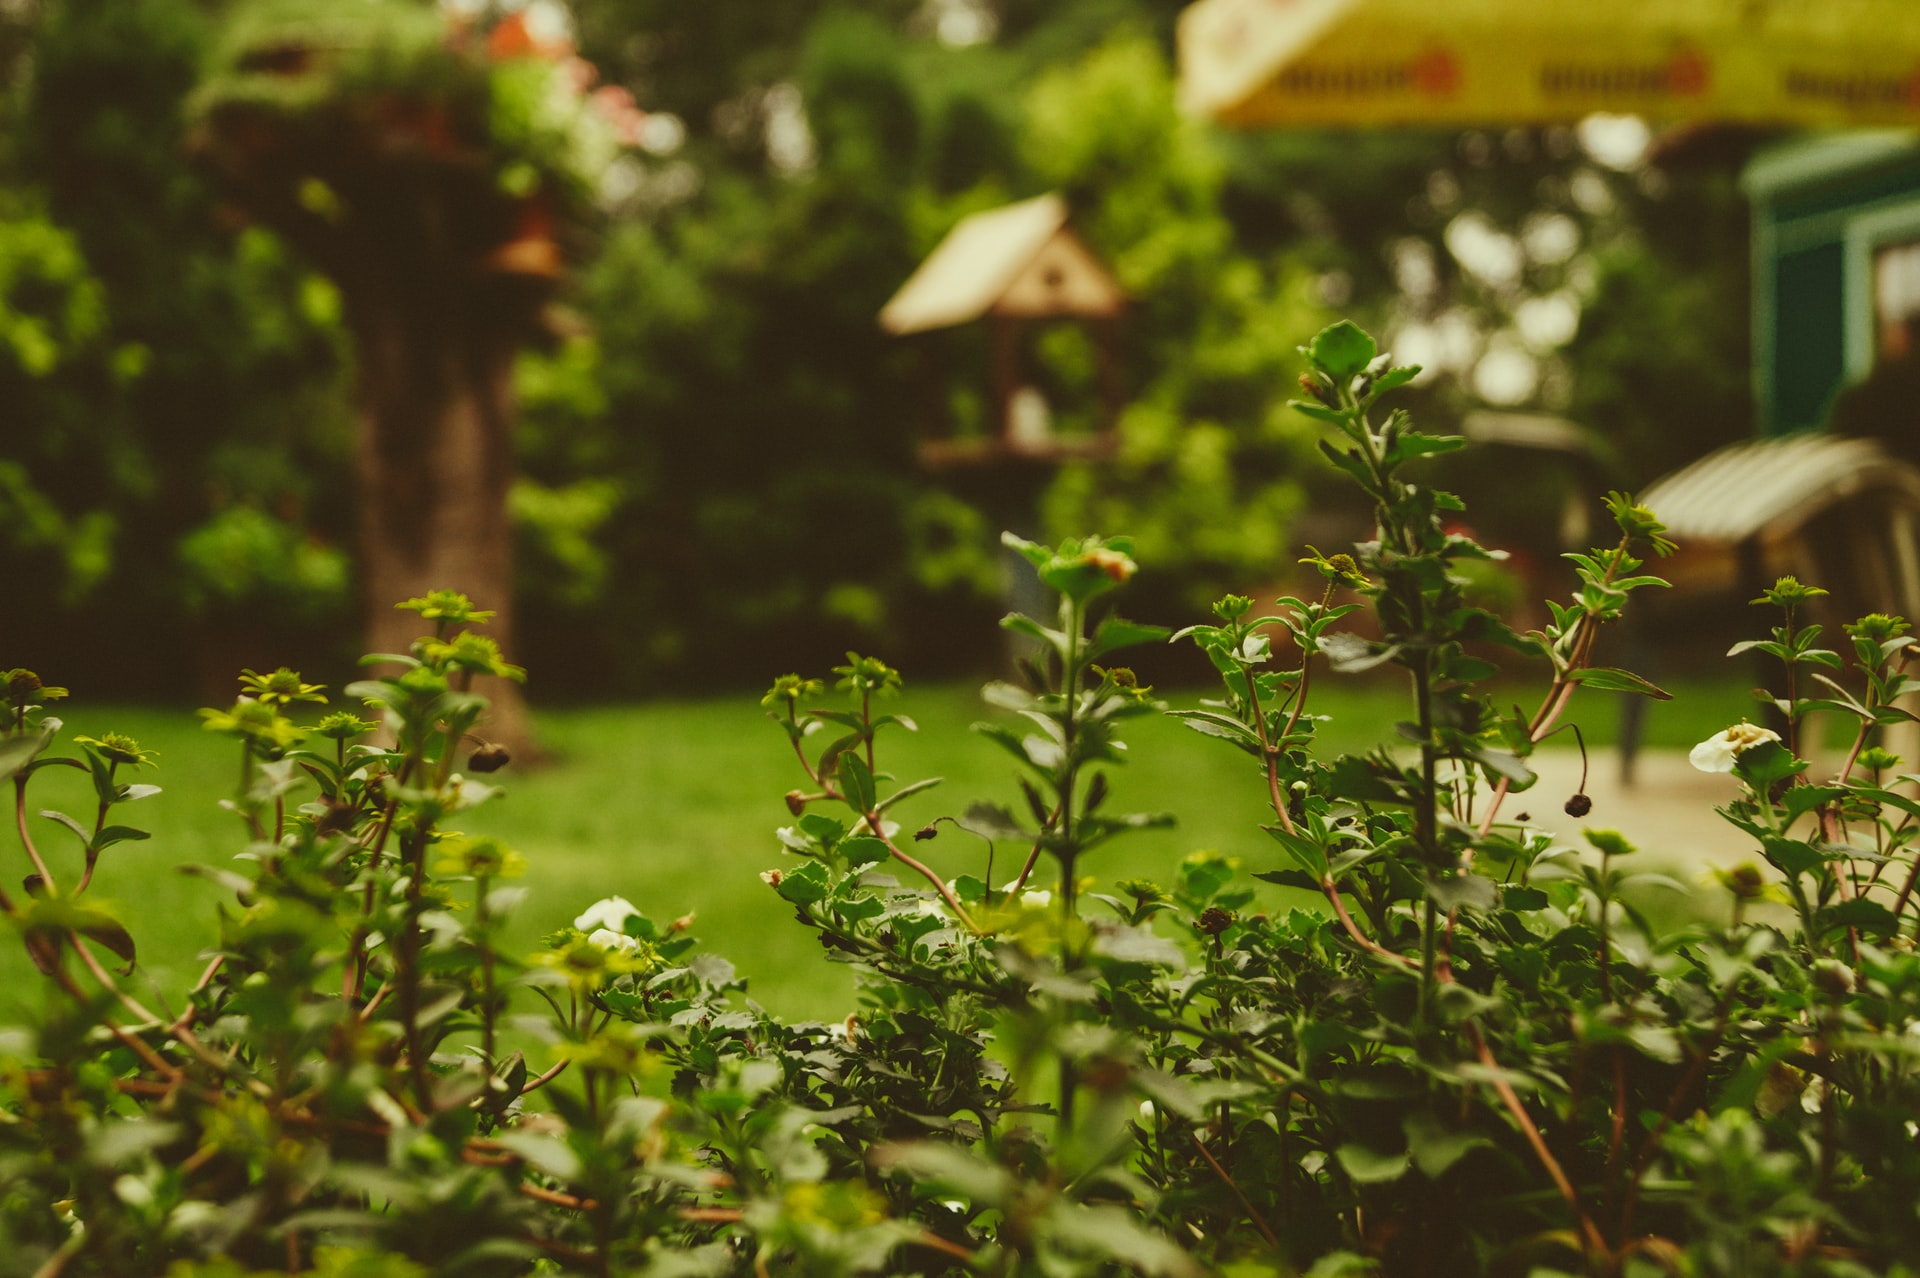 Garden. Photo: Martin Kníže / Unsplash (CC0)